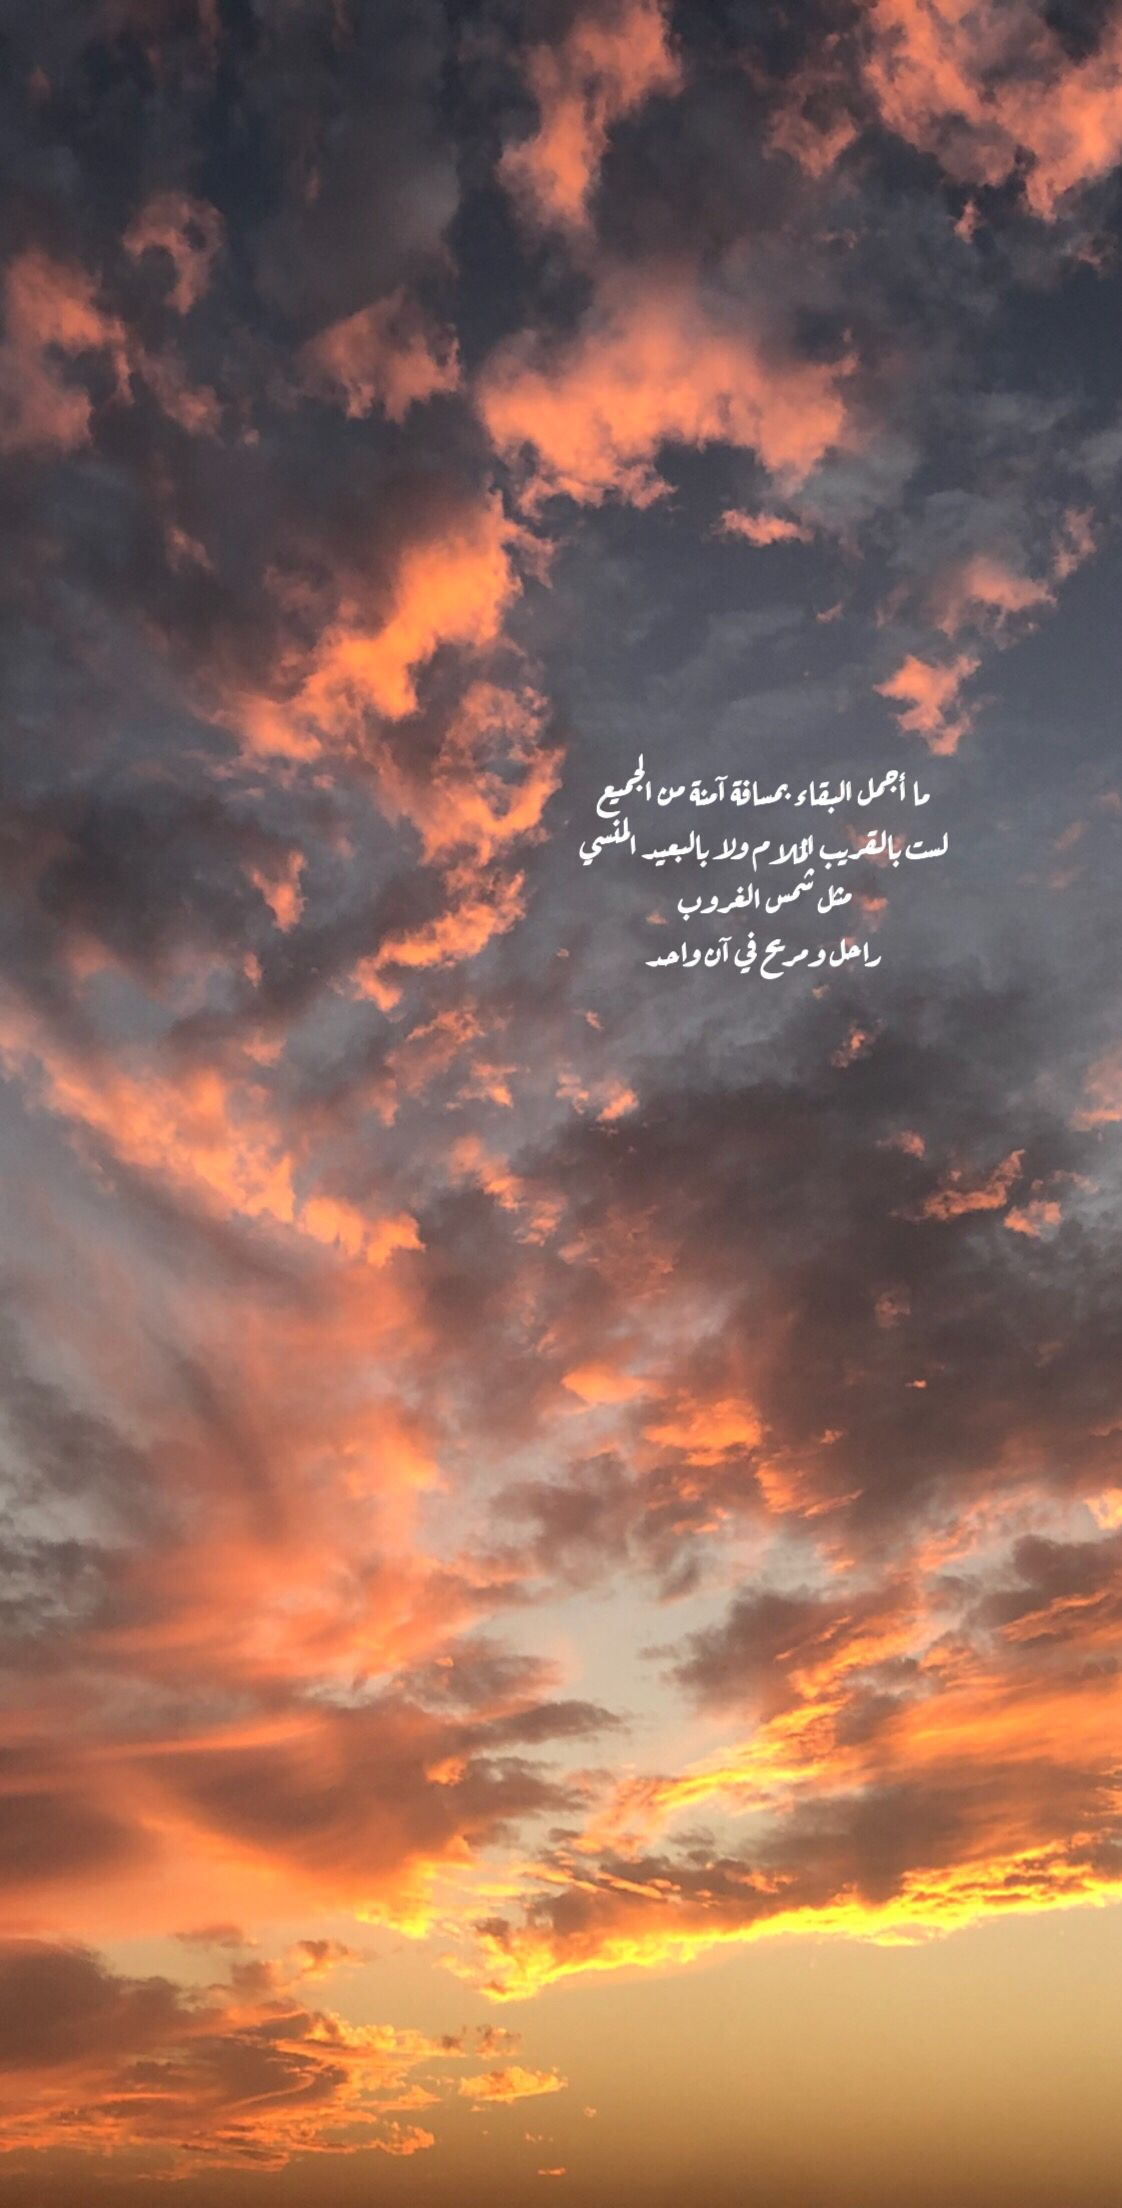 تطوير الغروب تصميمي تصويري رمزيات Photography Cover Photo Quotes Beautiful Quran Quotes Photo Quotes